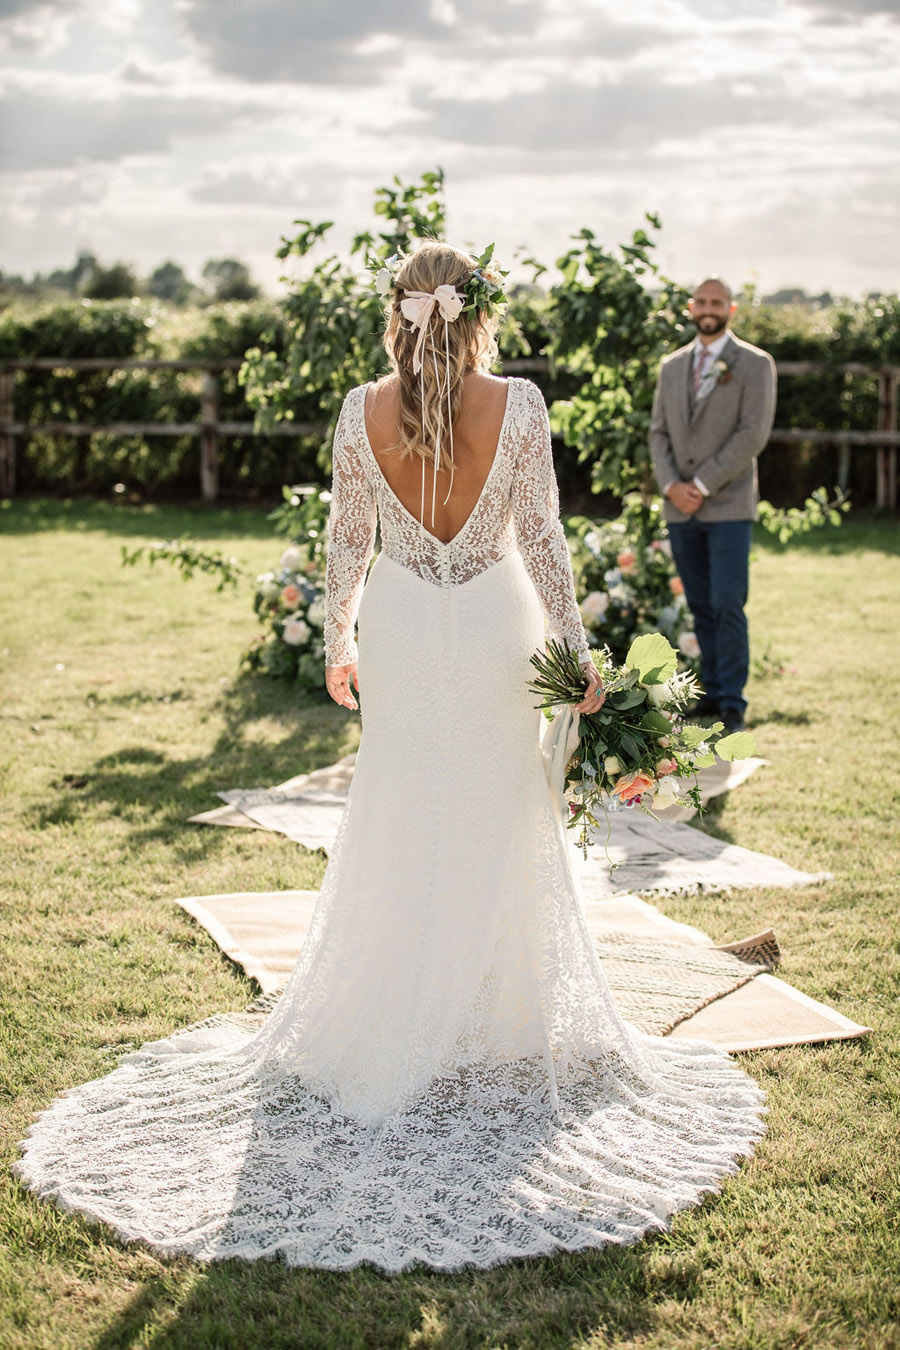 Evening sunset wedding inspiration at Willow Grange Farm, with Becky Harley Photography (23)